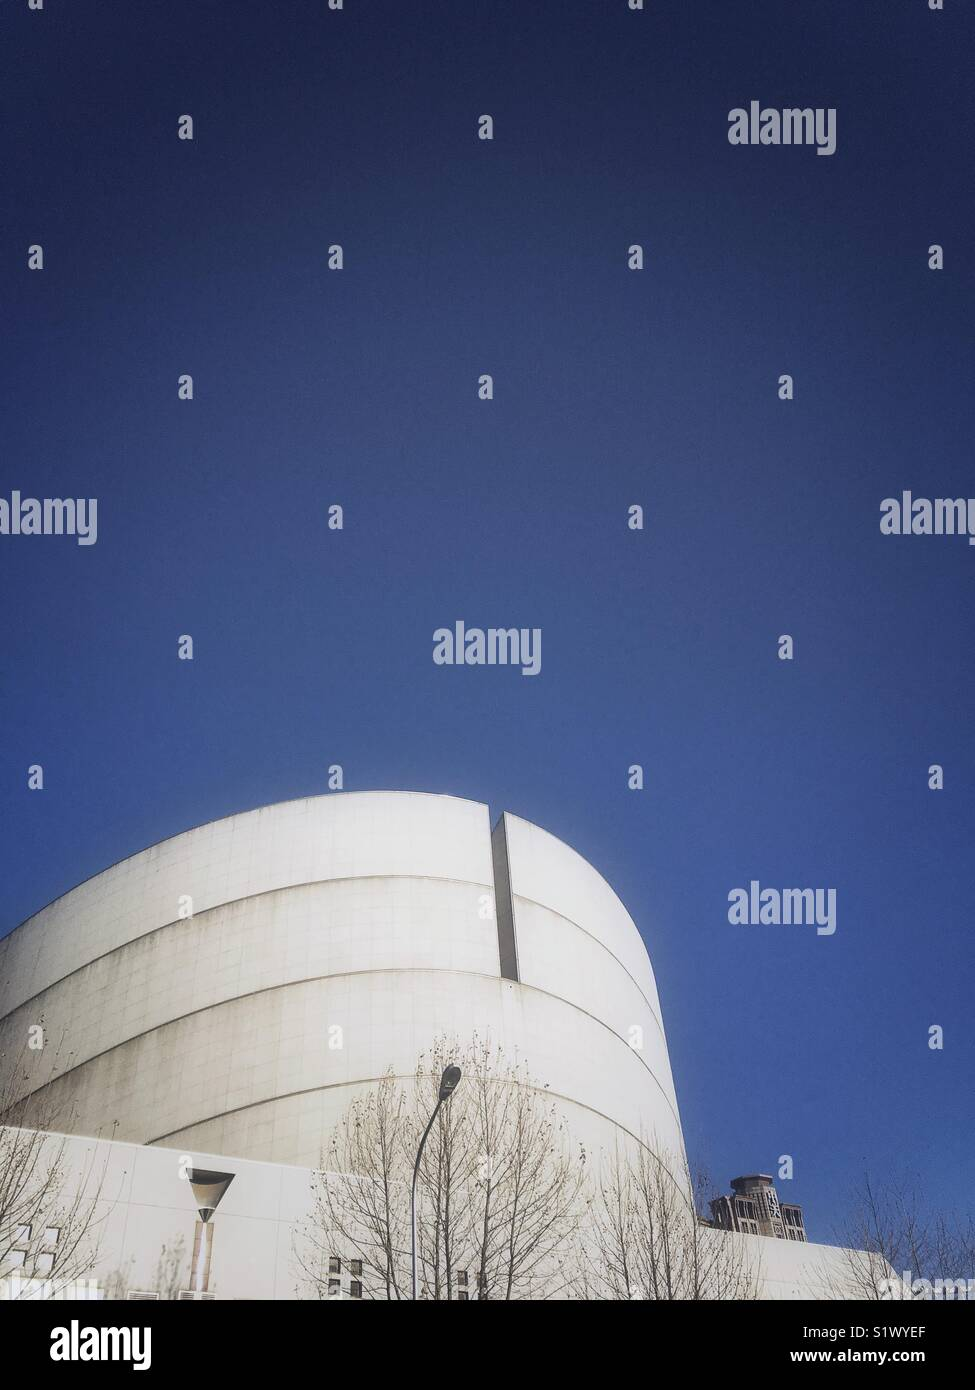 Top of round building against blue sky - Stock Image